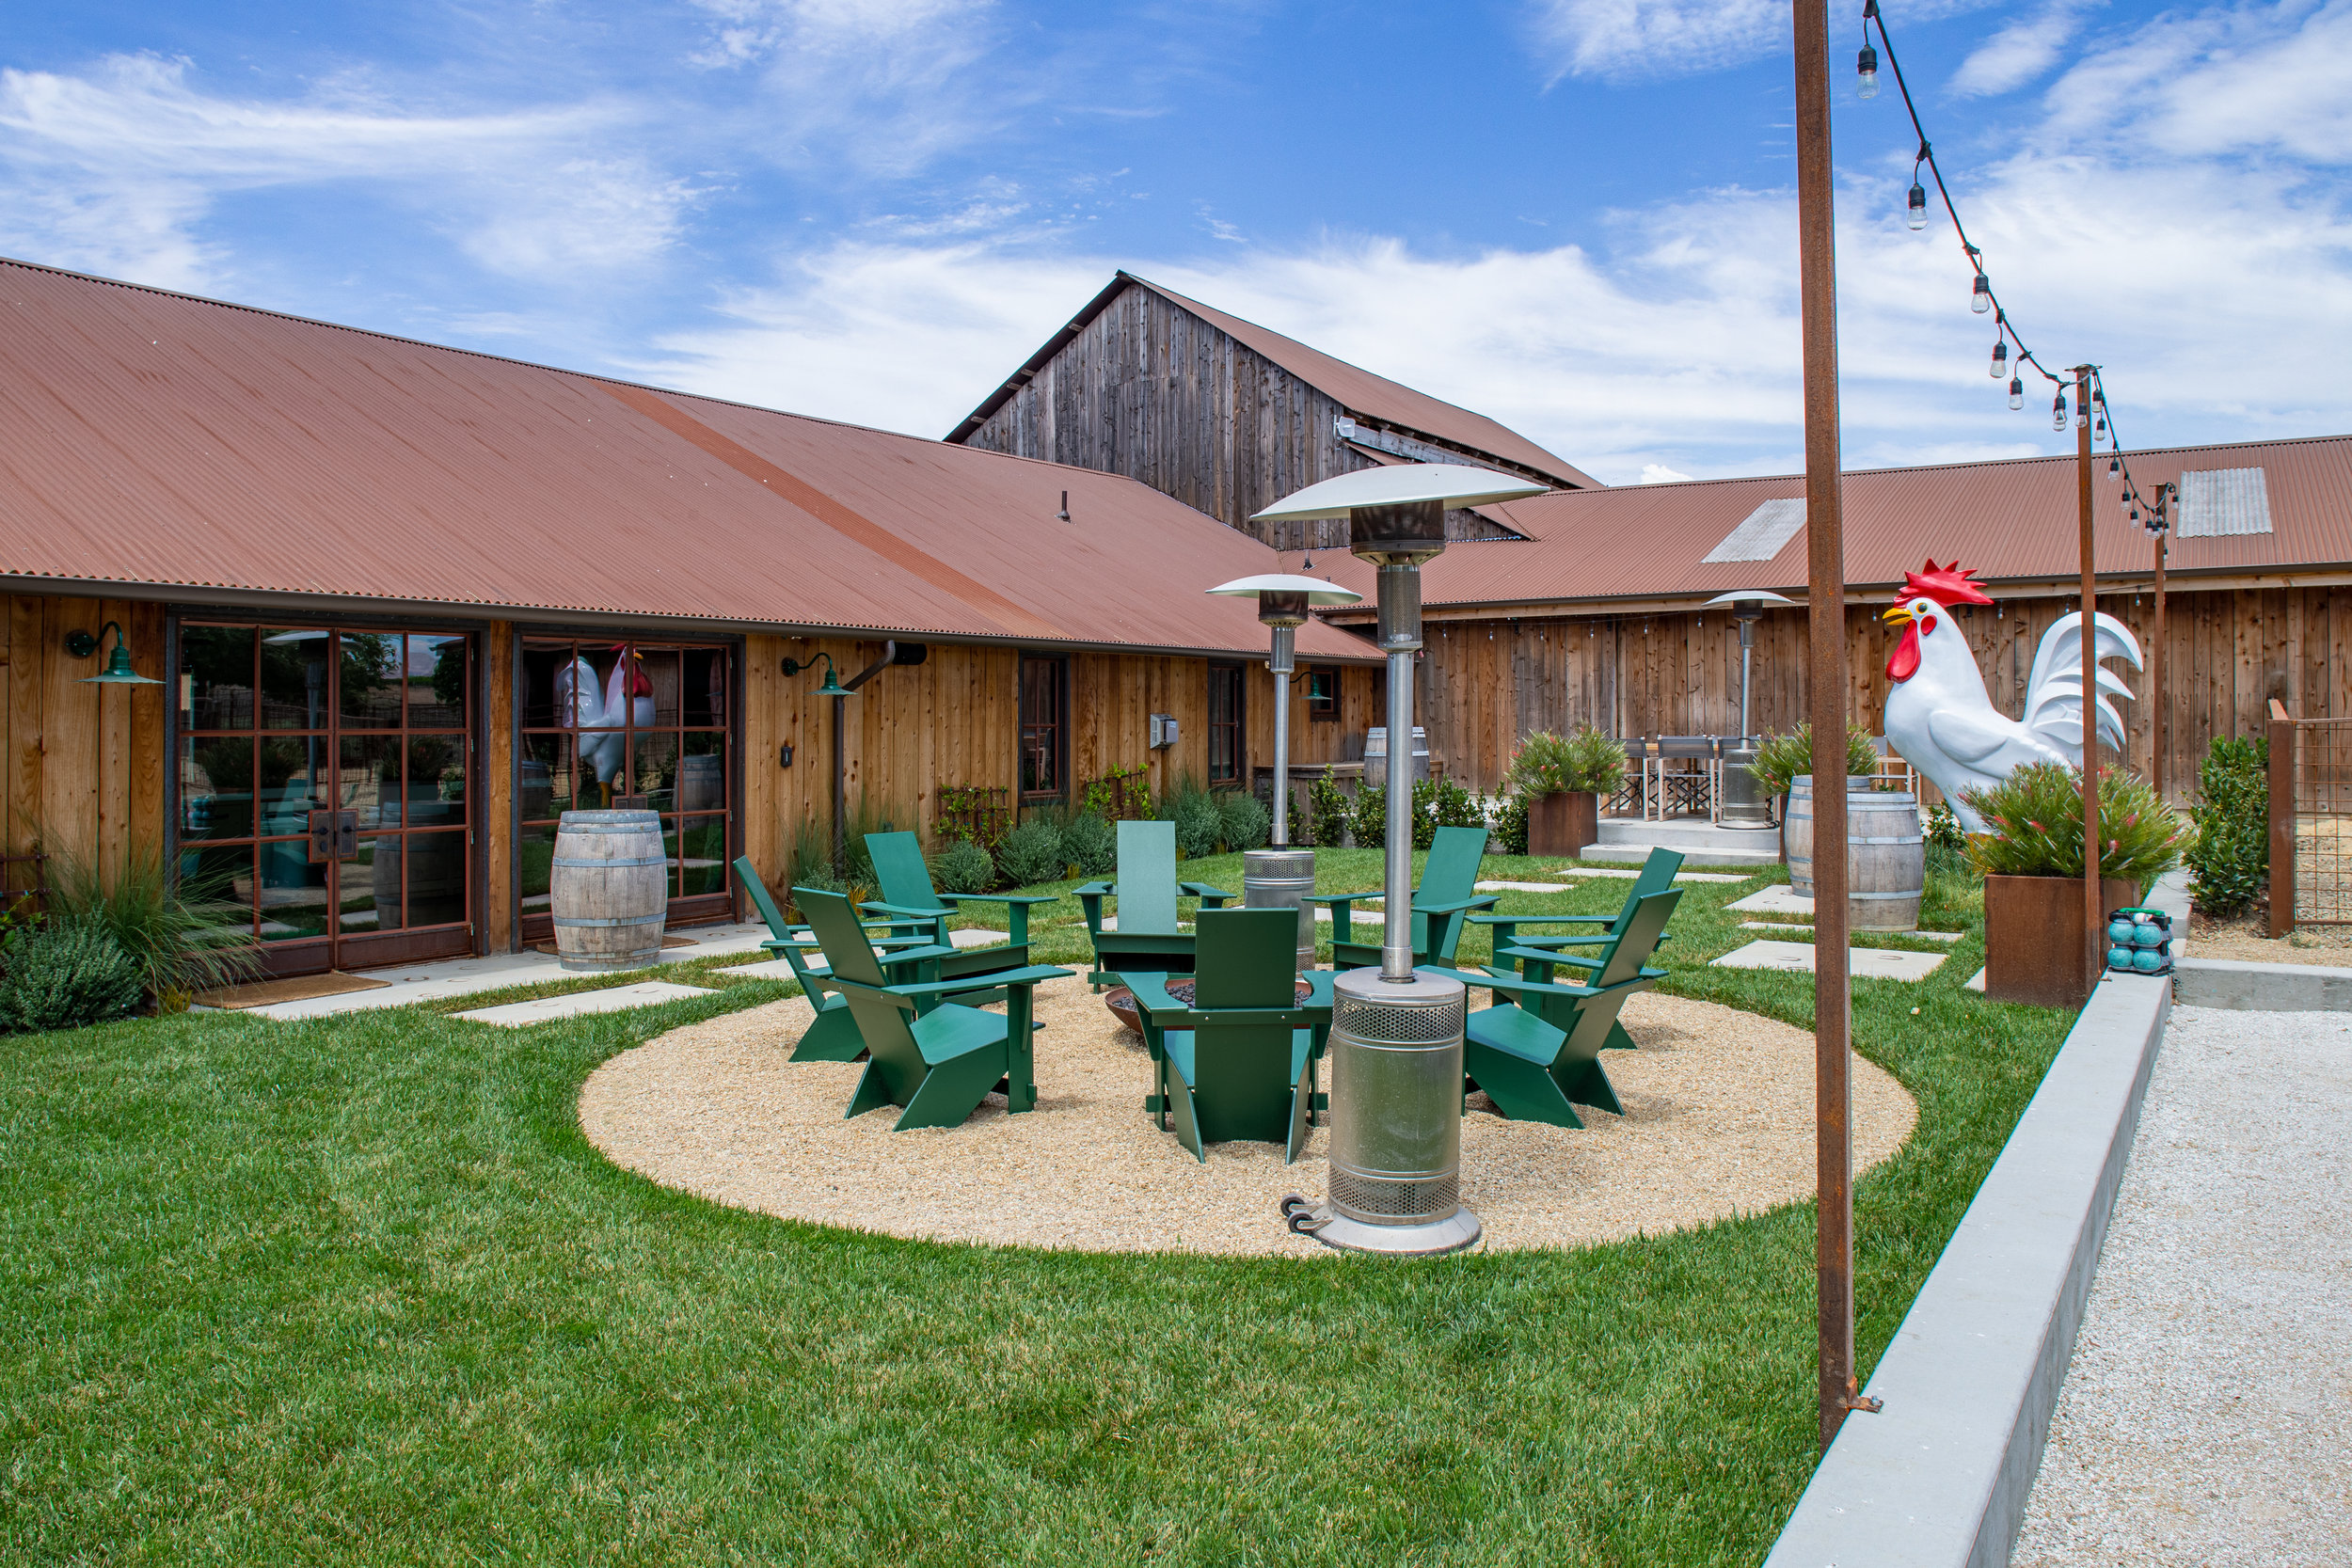 outdoor - from bbqs to bocce ball, this outdoor space is both ready for fun and relaxation. the setting is 360 views of edna valley's finest vineyards and rolling hills. you can sit around the fire pit while sipping on A CAN OF one of our complimentary ASSORTED slo brEW BEERS. or you can cruise around and check out the many farm animals on the property.